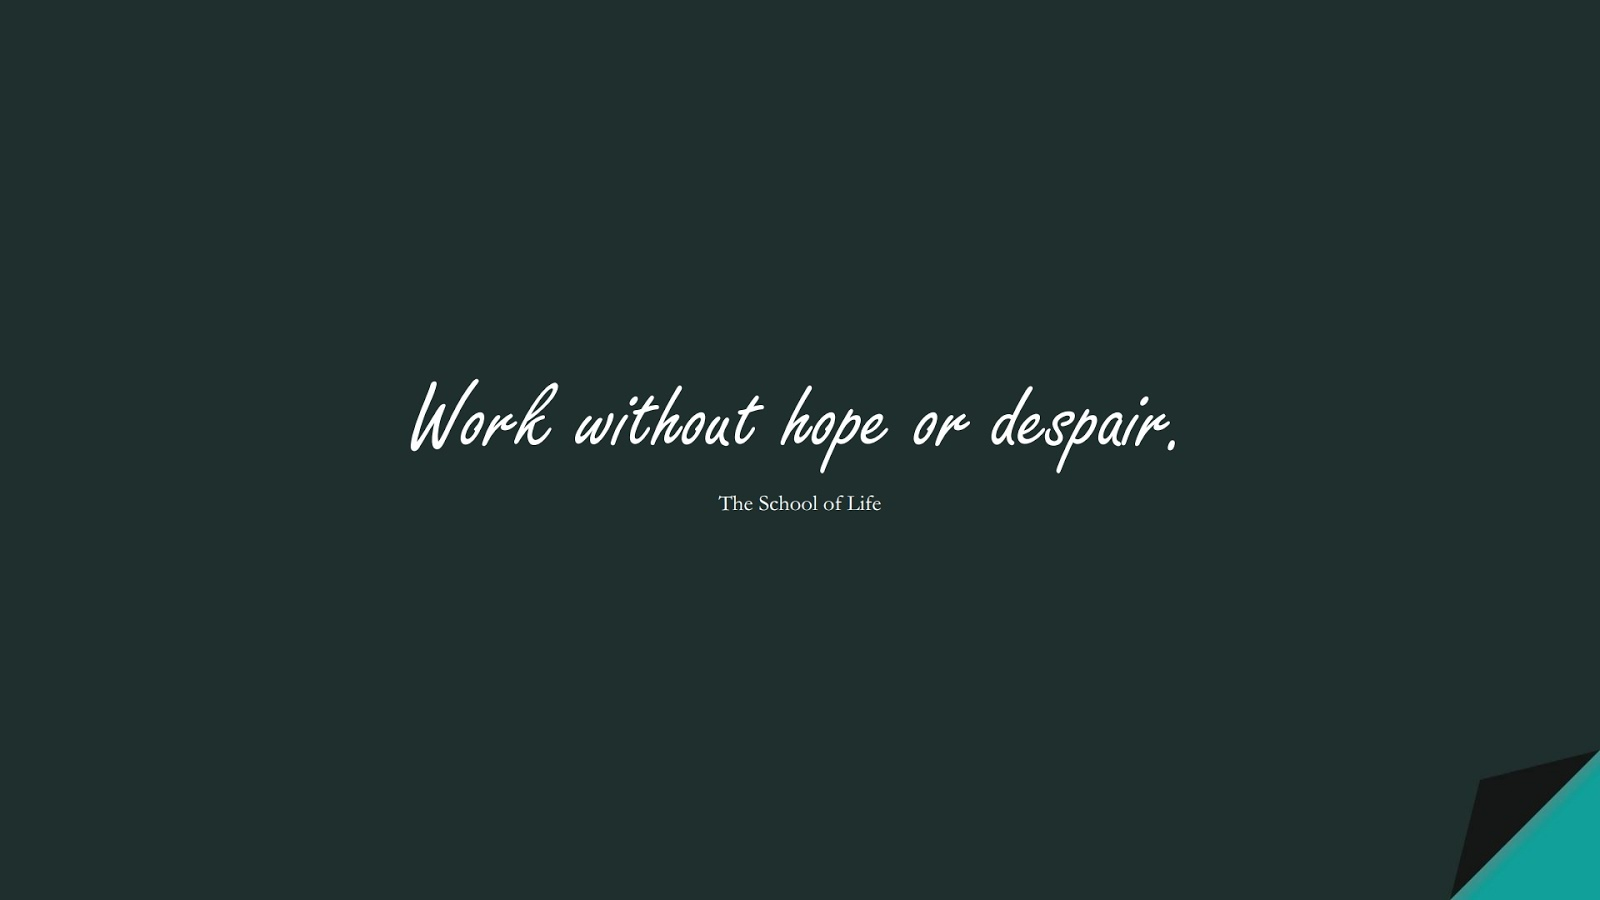 Work without hope or despair. (The School of Life);  #EncouragingQuotes